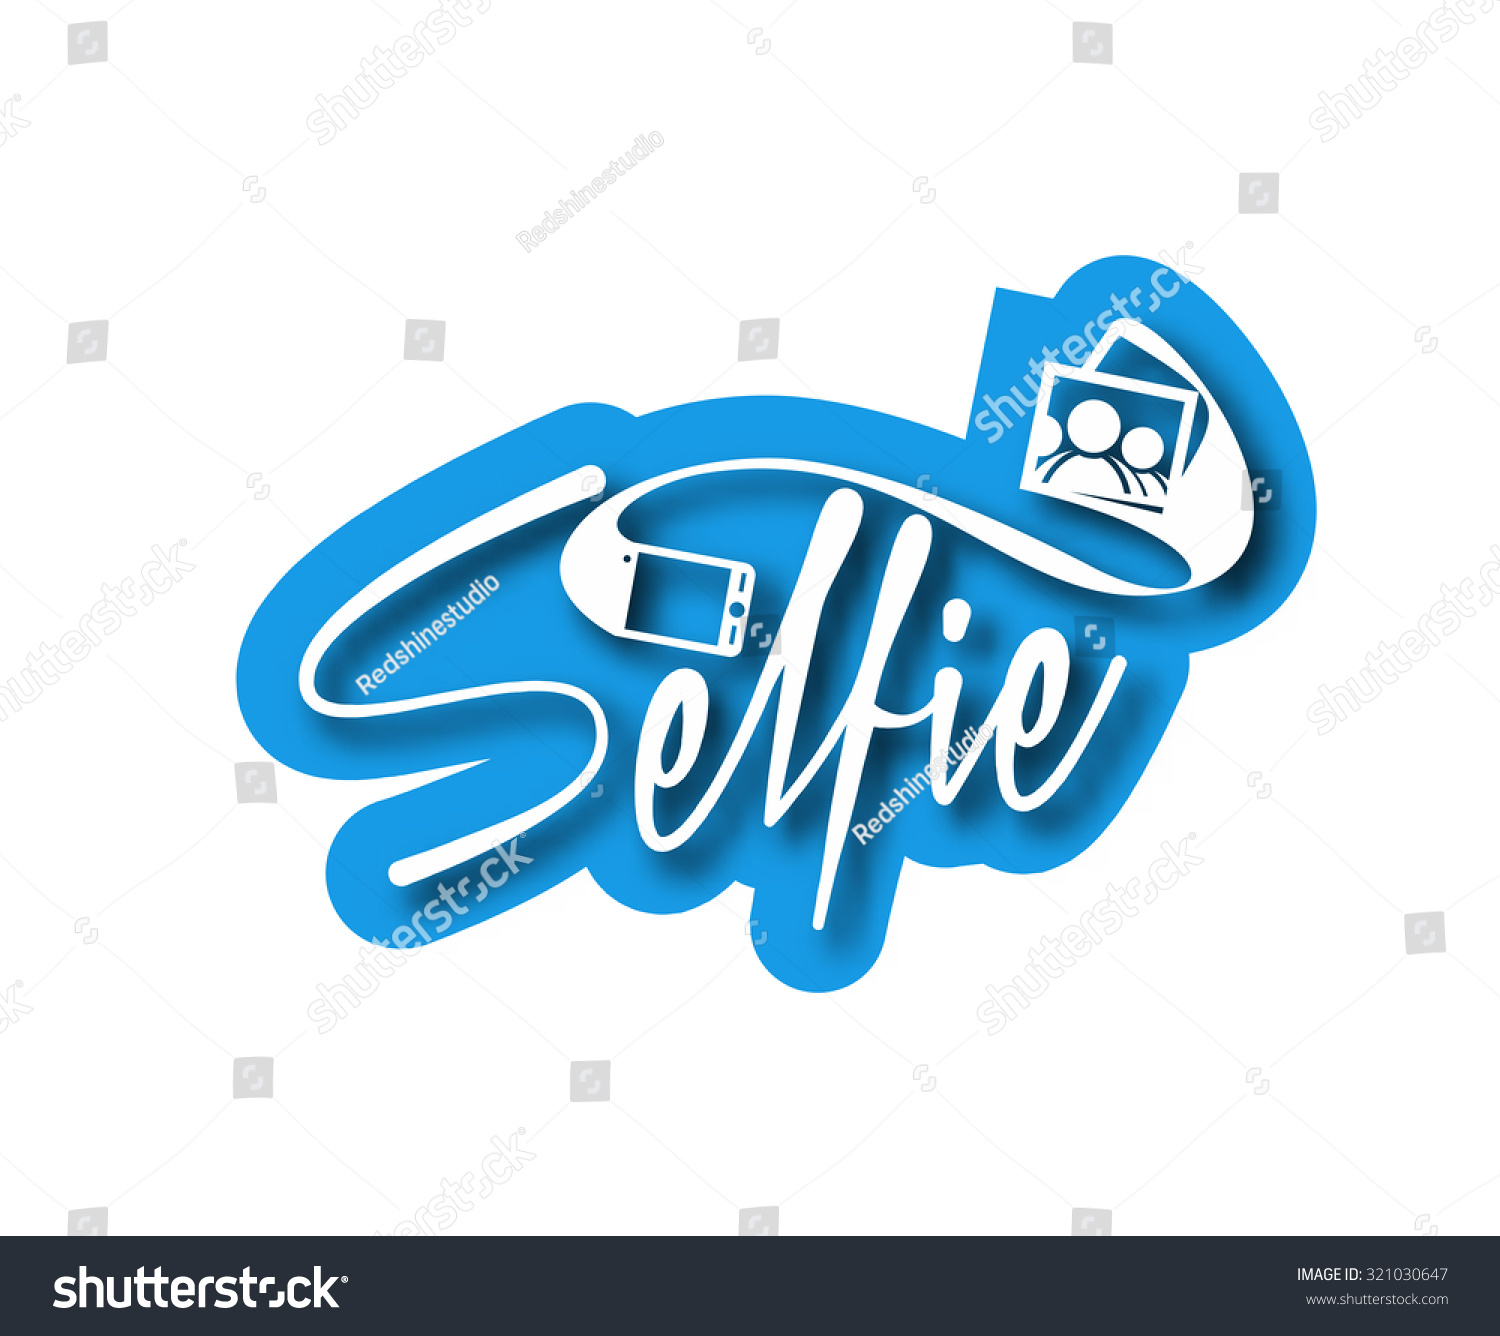 stock-vector-selfie-icons-and-vector-logo-design-element-321030647.jpg